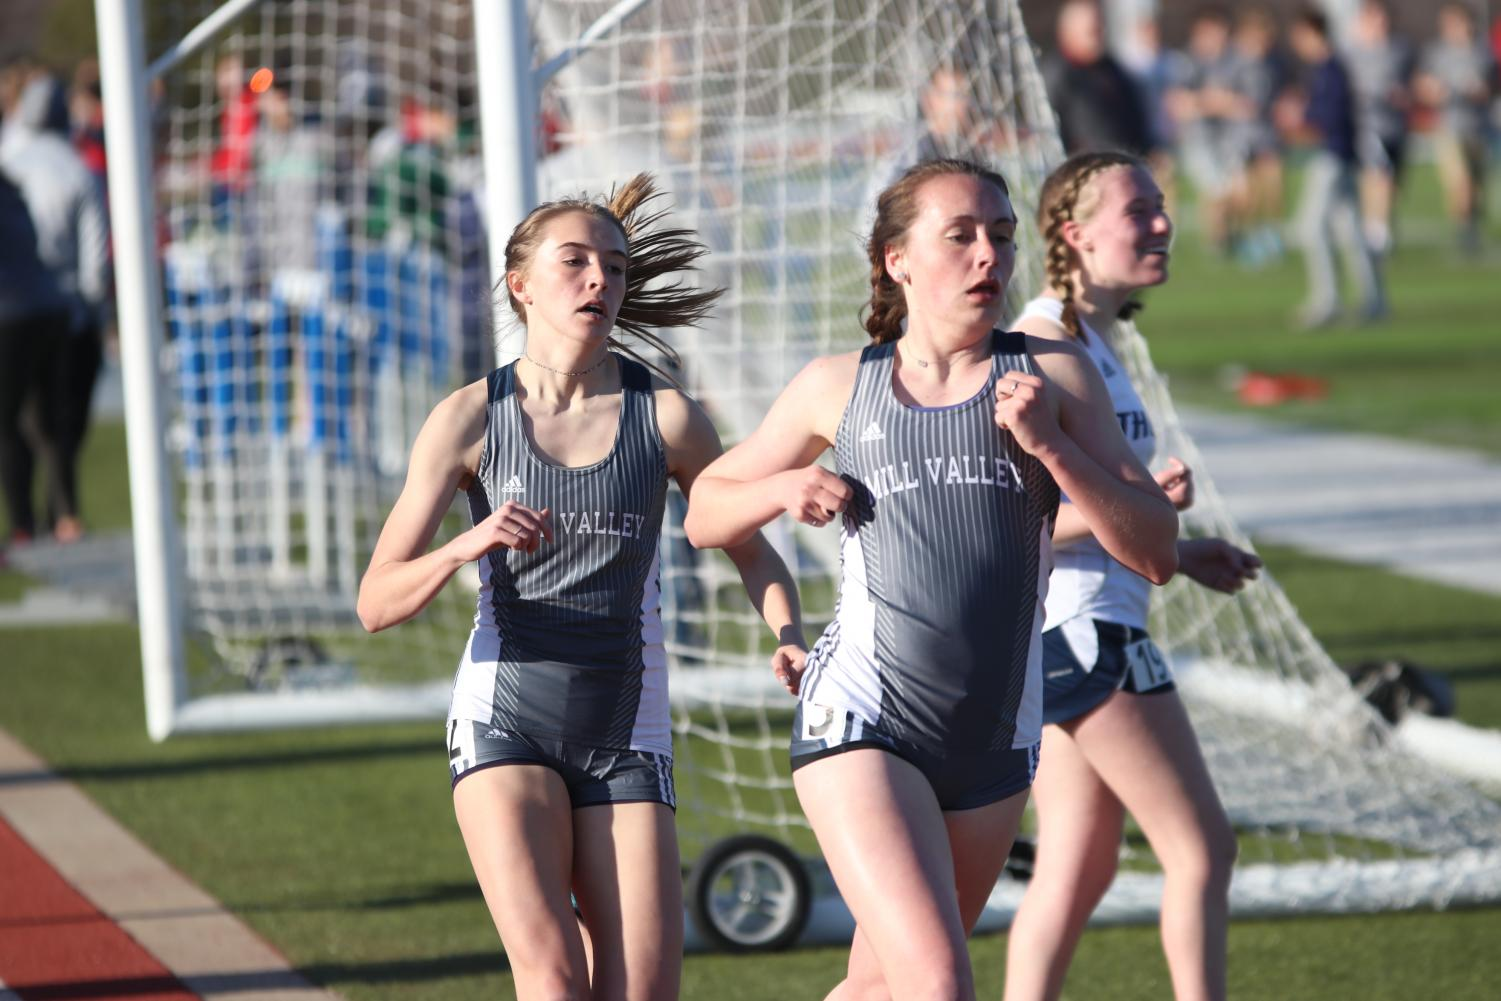 During the 800 meter dash on Friday, April 5, senior Delaney Kemp competes with her teammate junior Molly Haymaker. Kemp, like other girls varsity athletes at Mill Valley, was forced to choose between soccer and running during her freshman year.